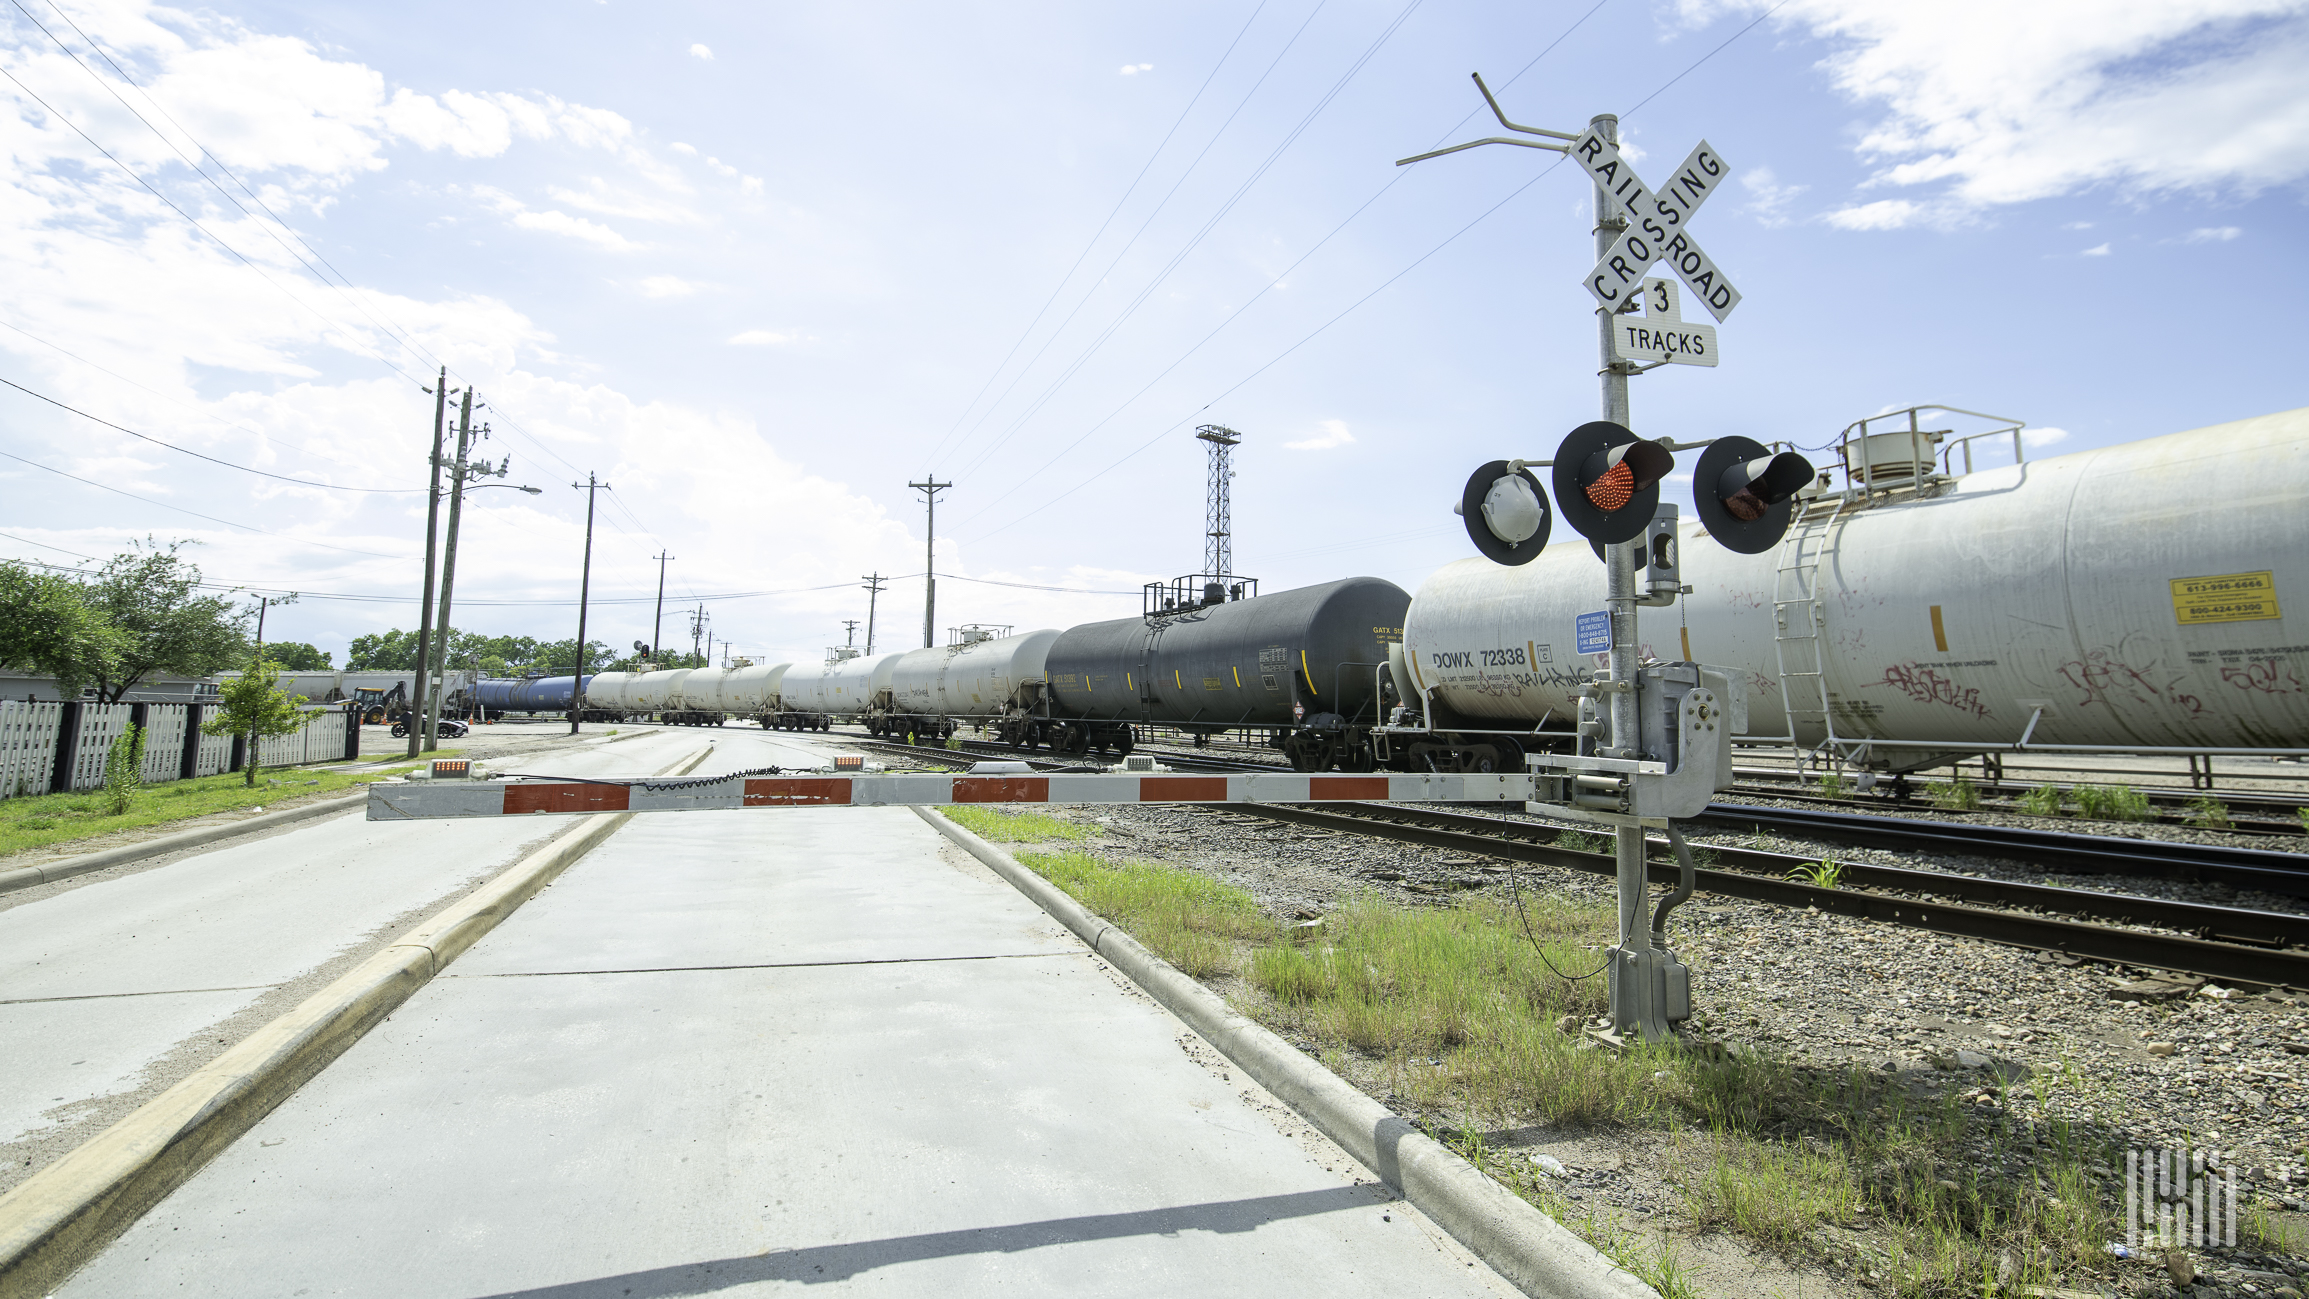 A photograph of a train of tank cars at a rail crossing.